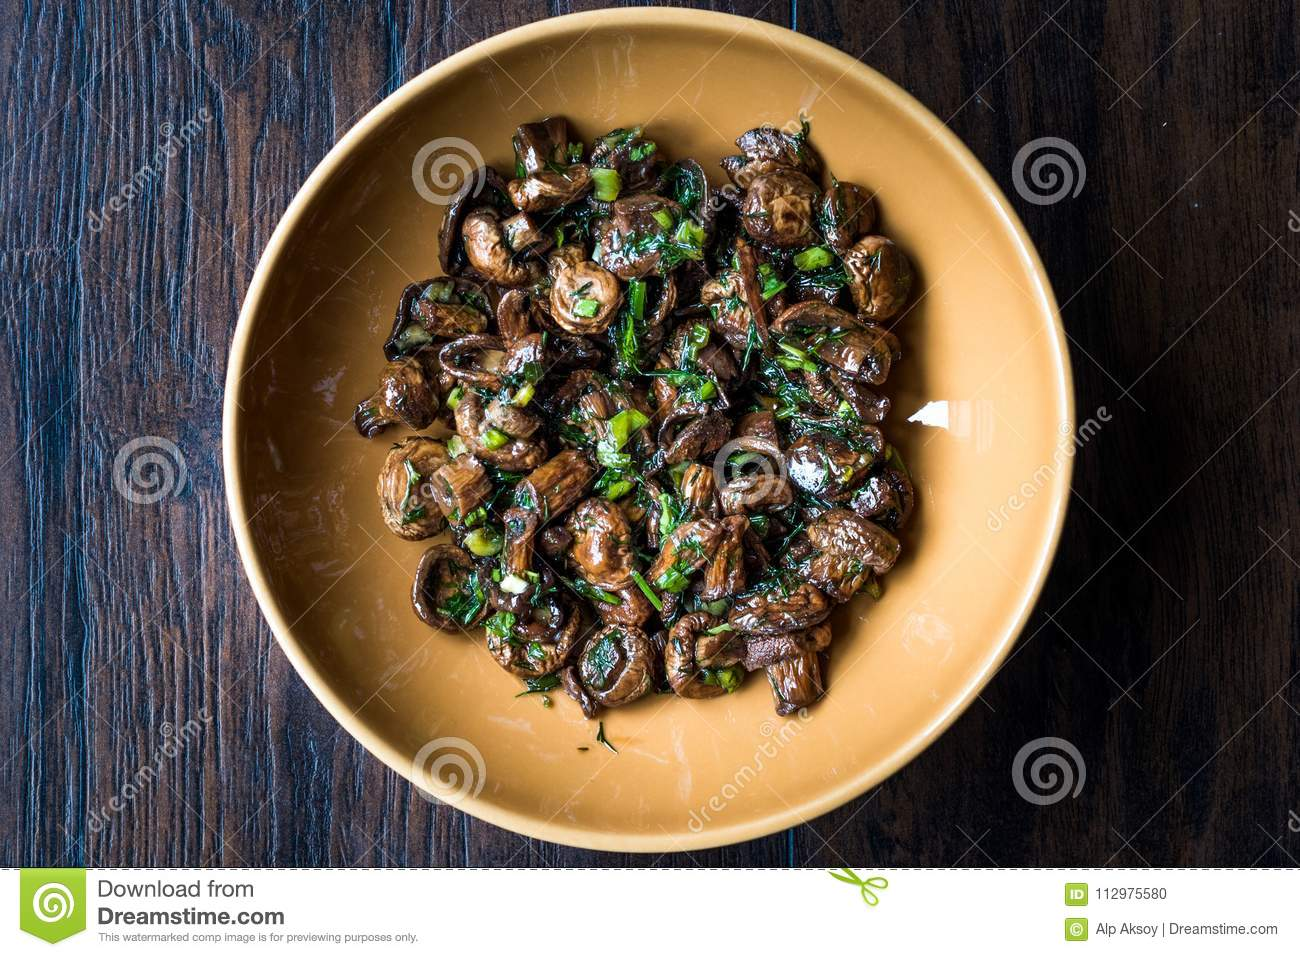 Homemade Cultivated Mushroom Salad with Dill and Green Onions.